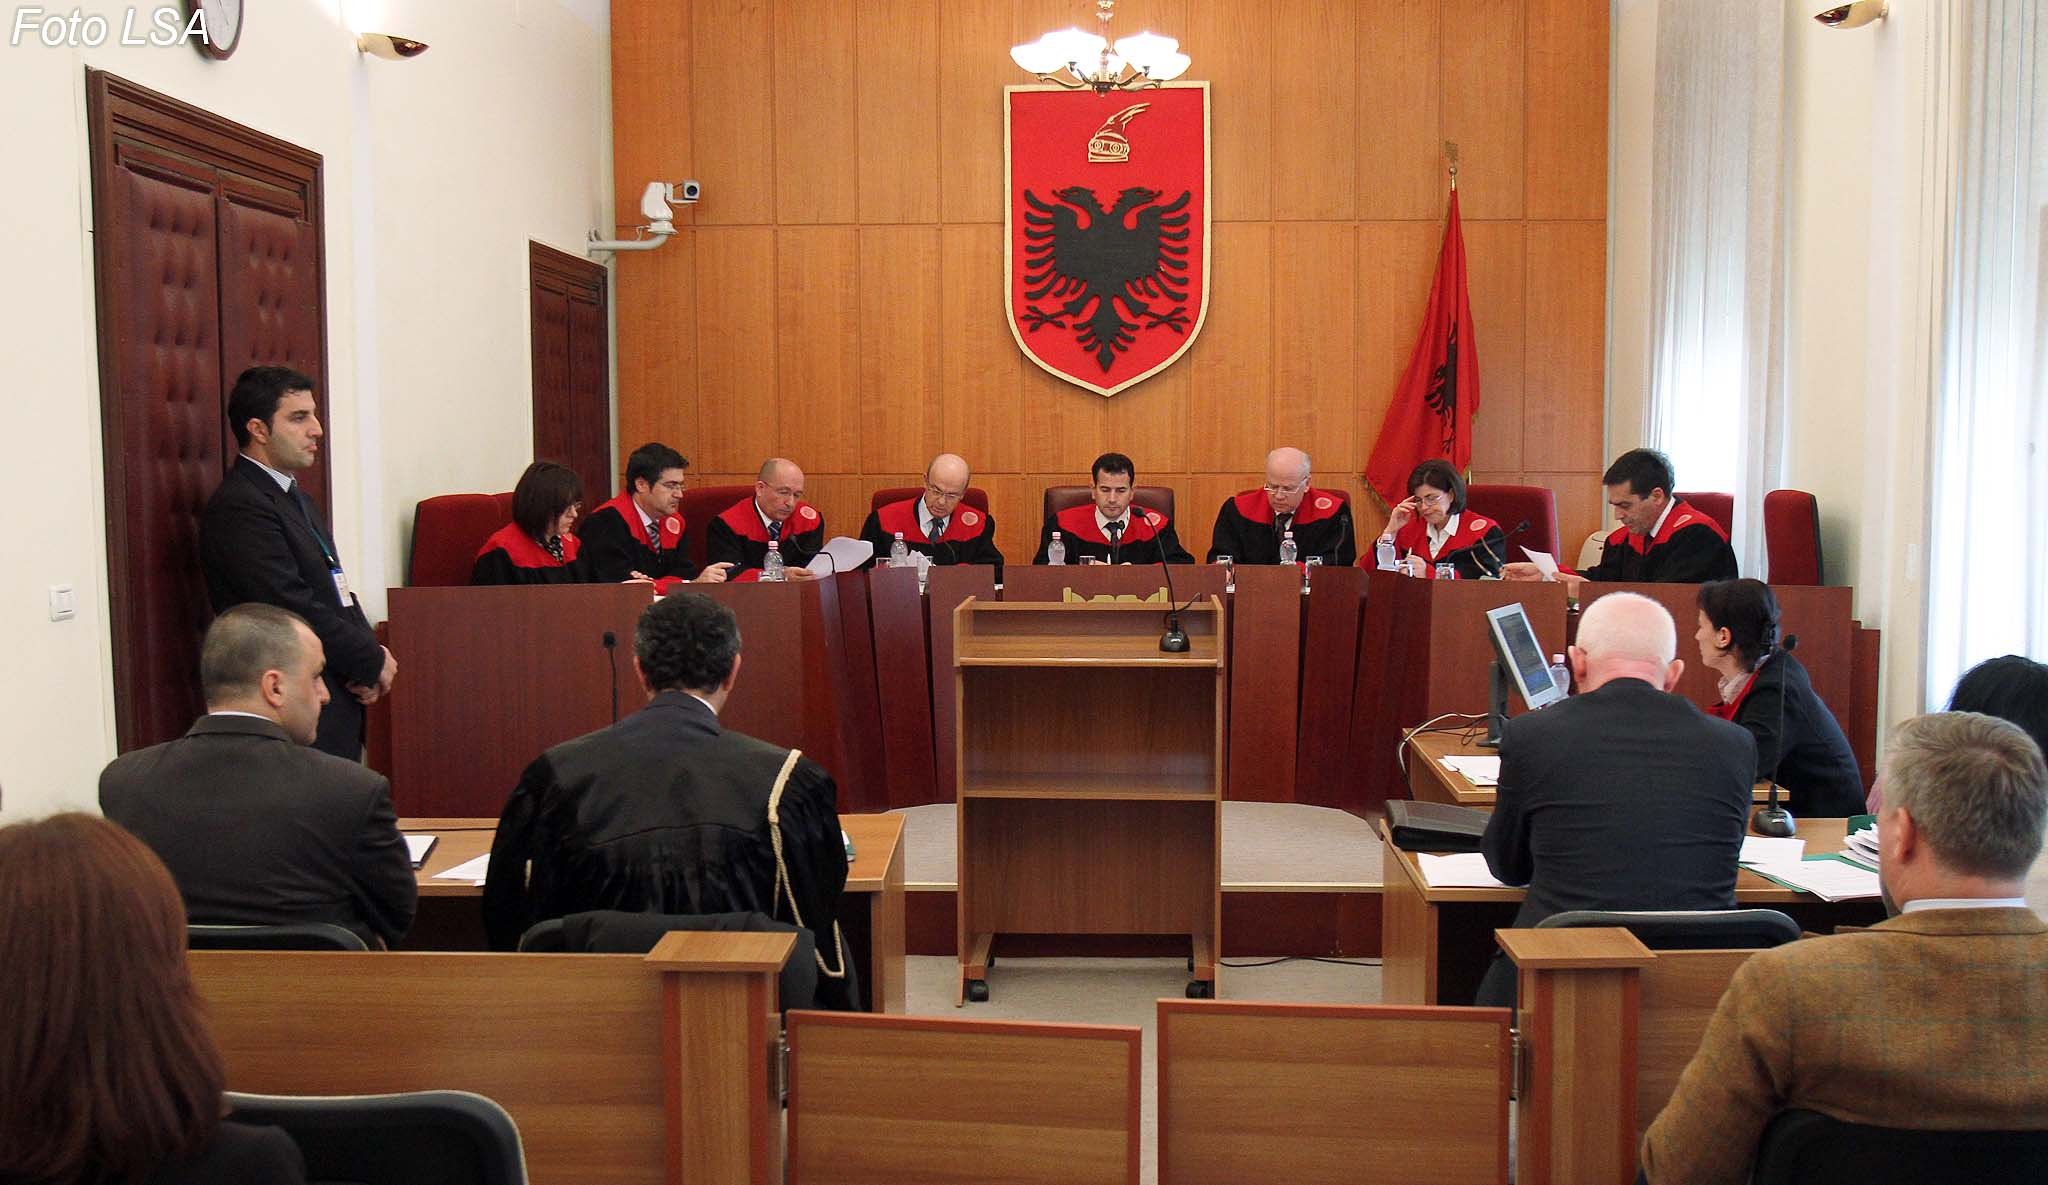 Another member of the Constitutional Court impeached, crisis deepens